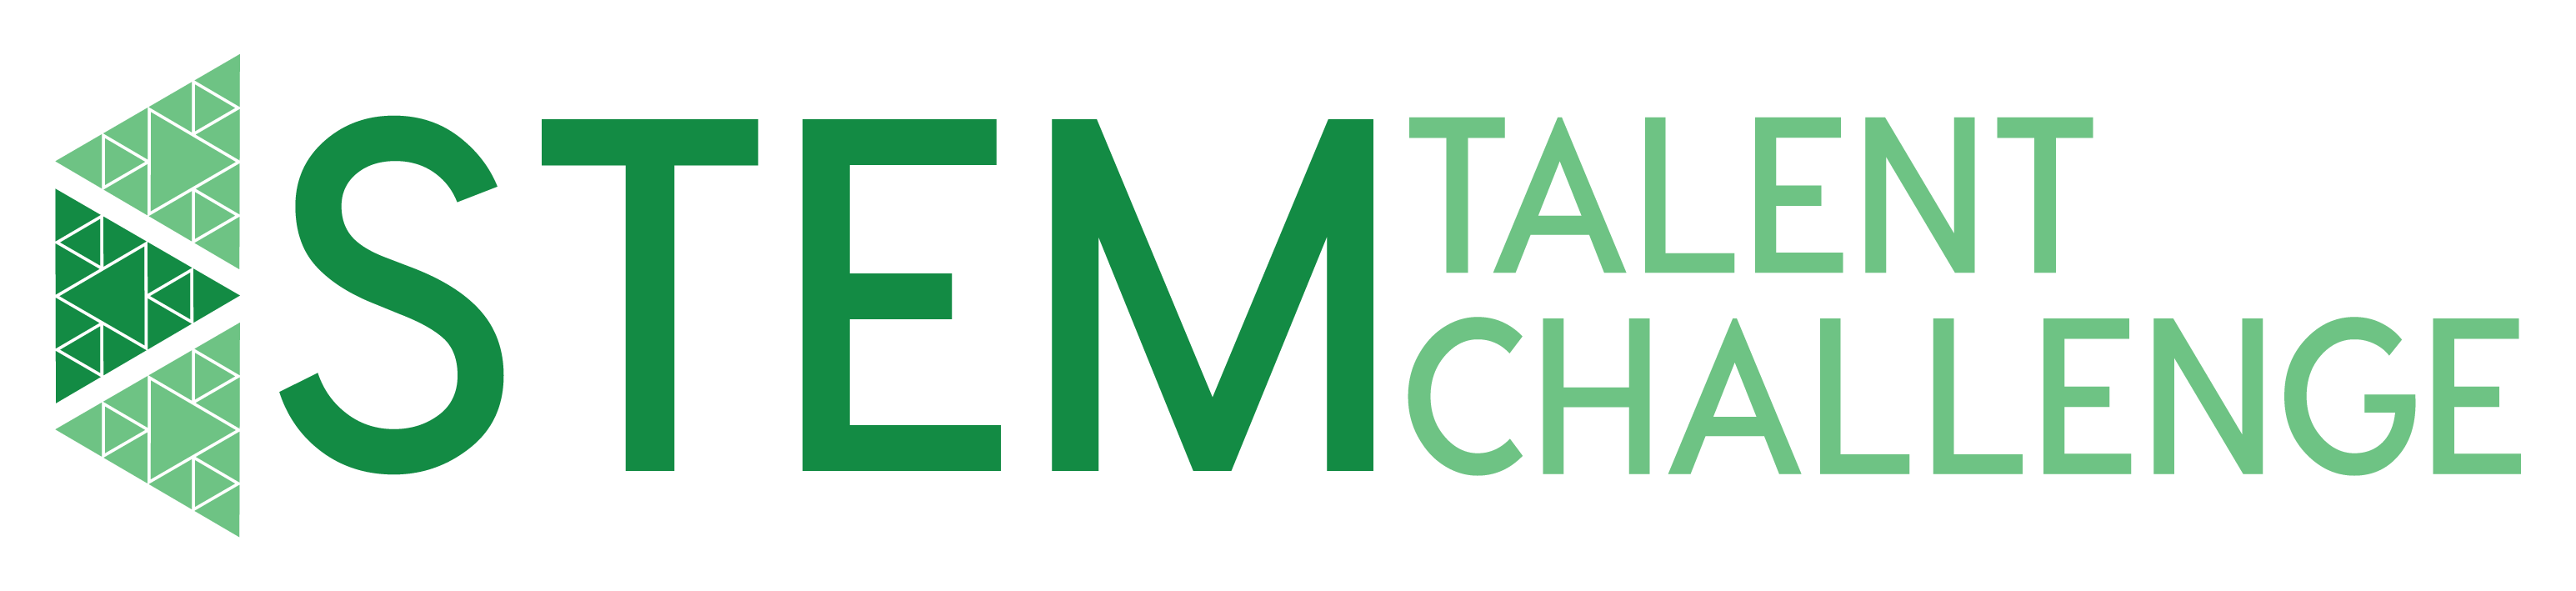 Office of Innovation and Entrepreneurship STEM Talent Challenge logo